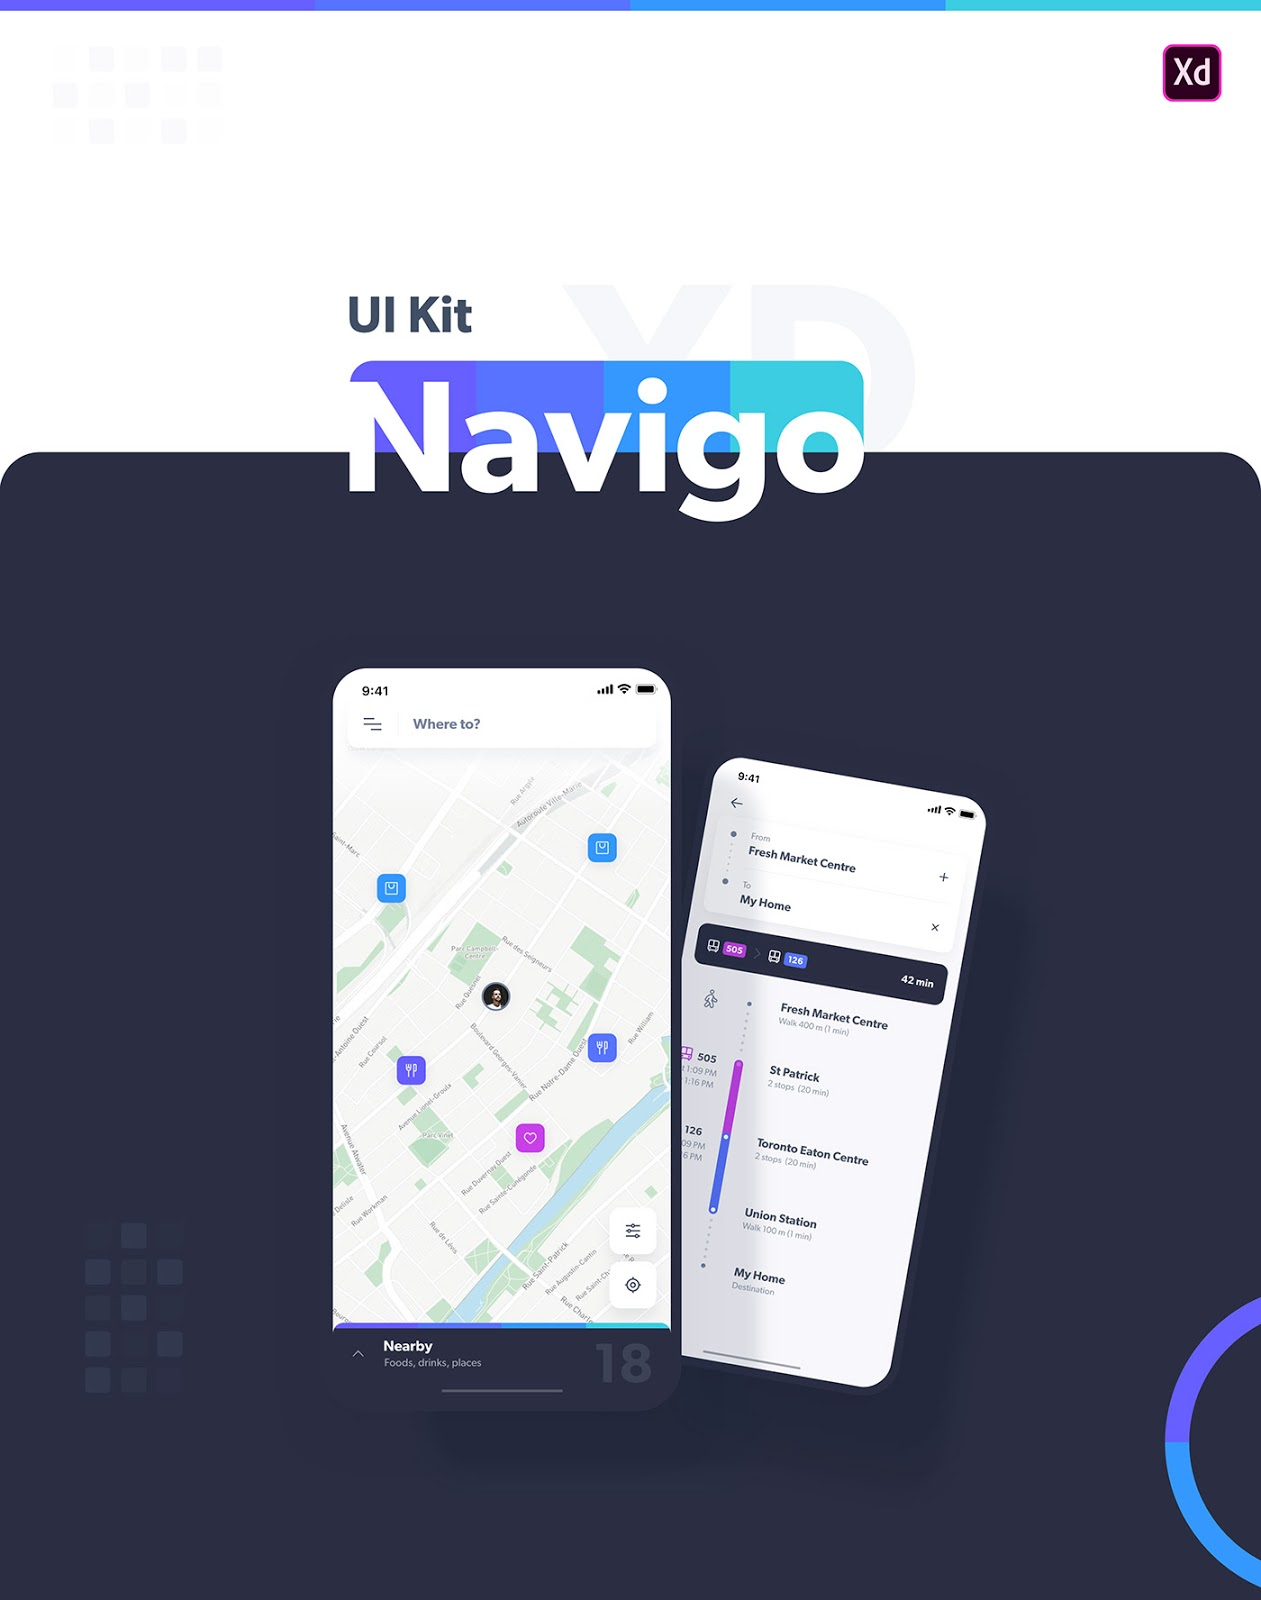 Navigo is a free iOS UI Kit made for Adobe XD It includes